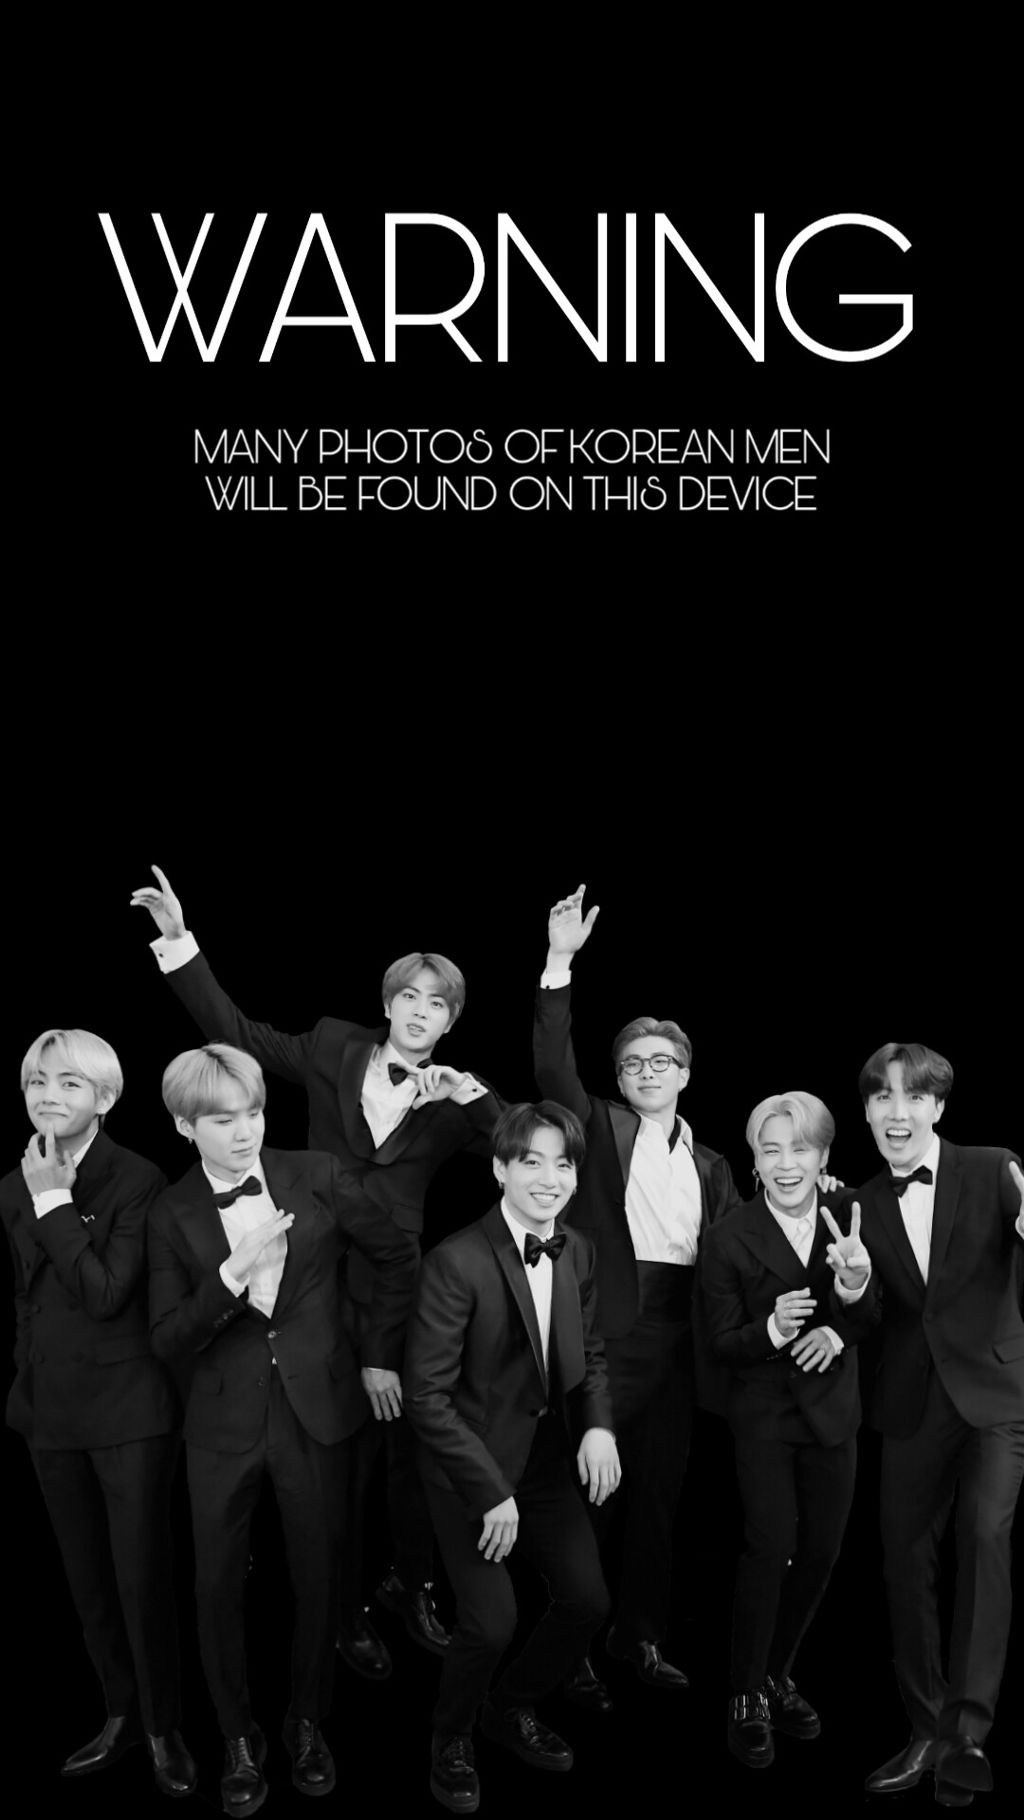 Just A Basic Bts Phone Wallpaper Kpop Bts Bt